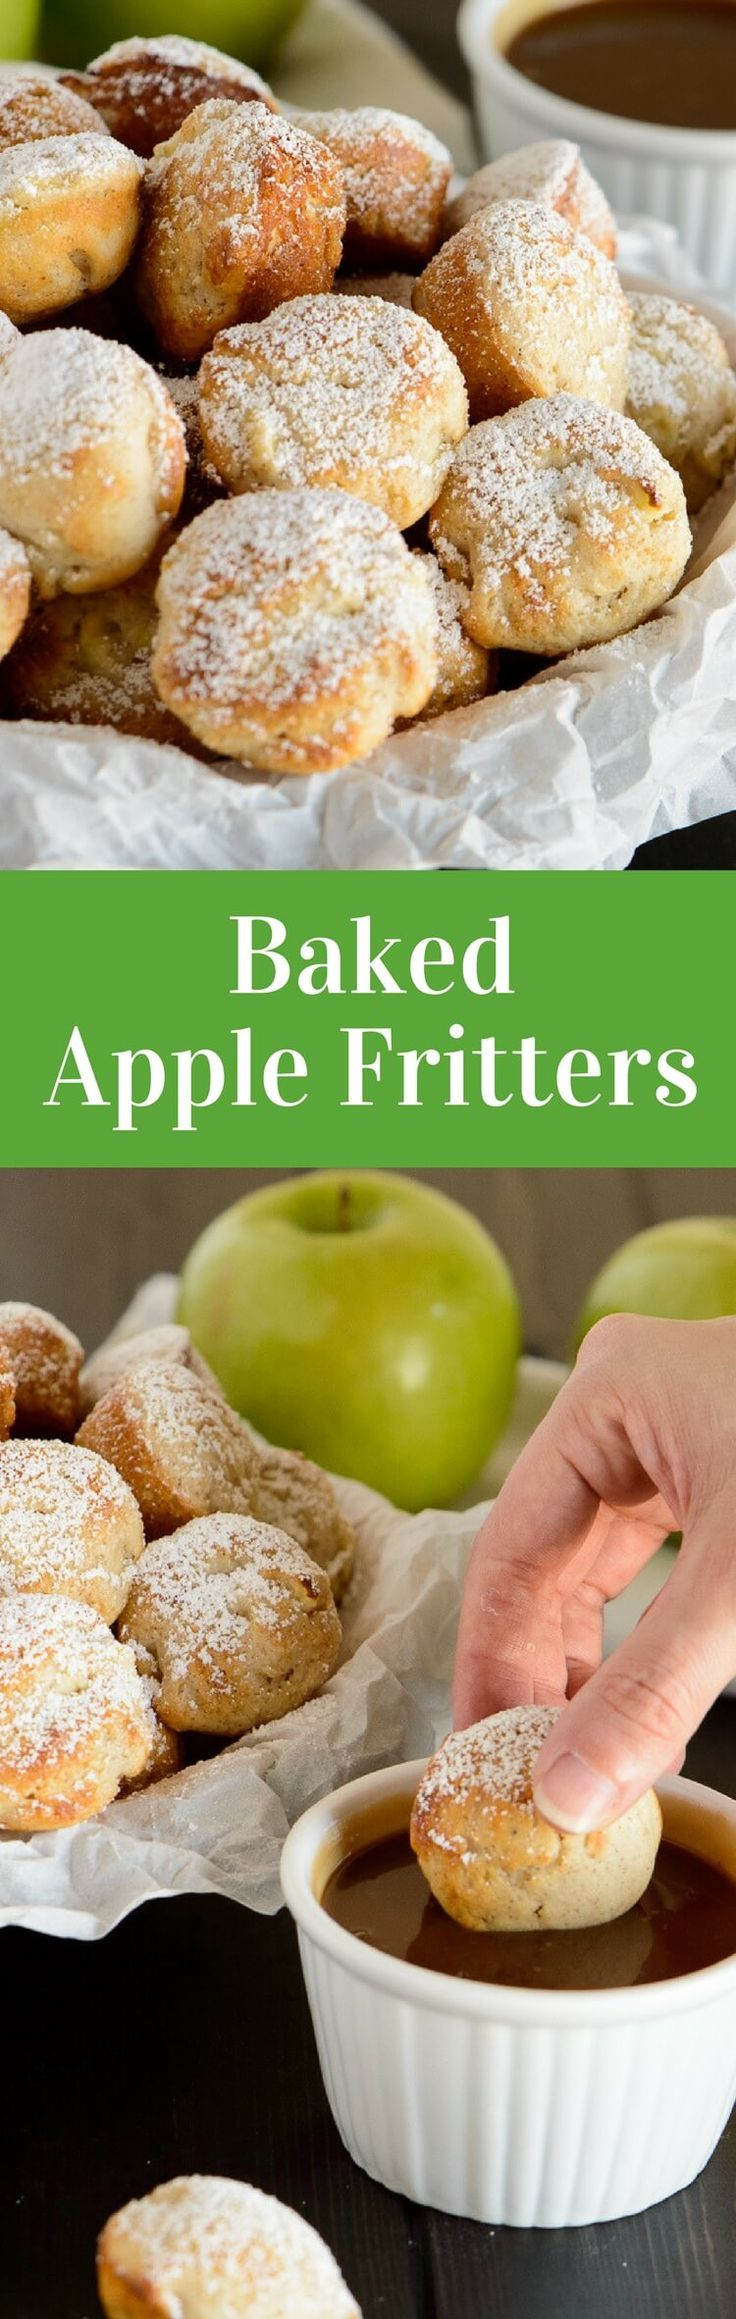 These baked apple fritters are so delicious. Whip up this easy recipe and enjoy a fair classic that is baked and not fried! via @introvertbaker